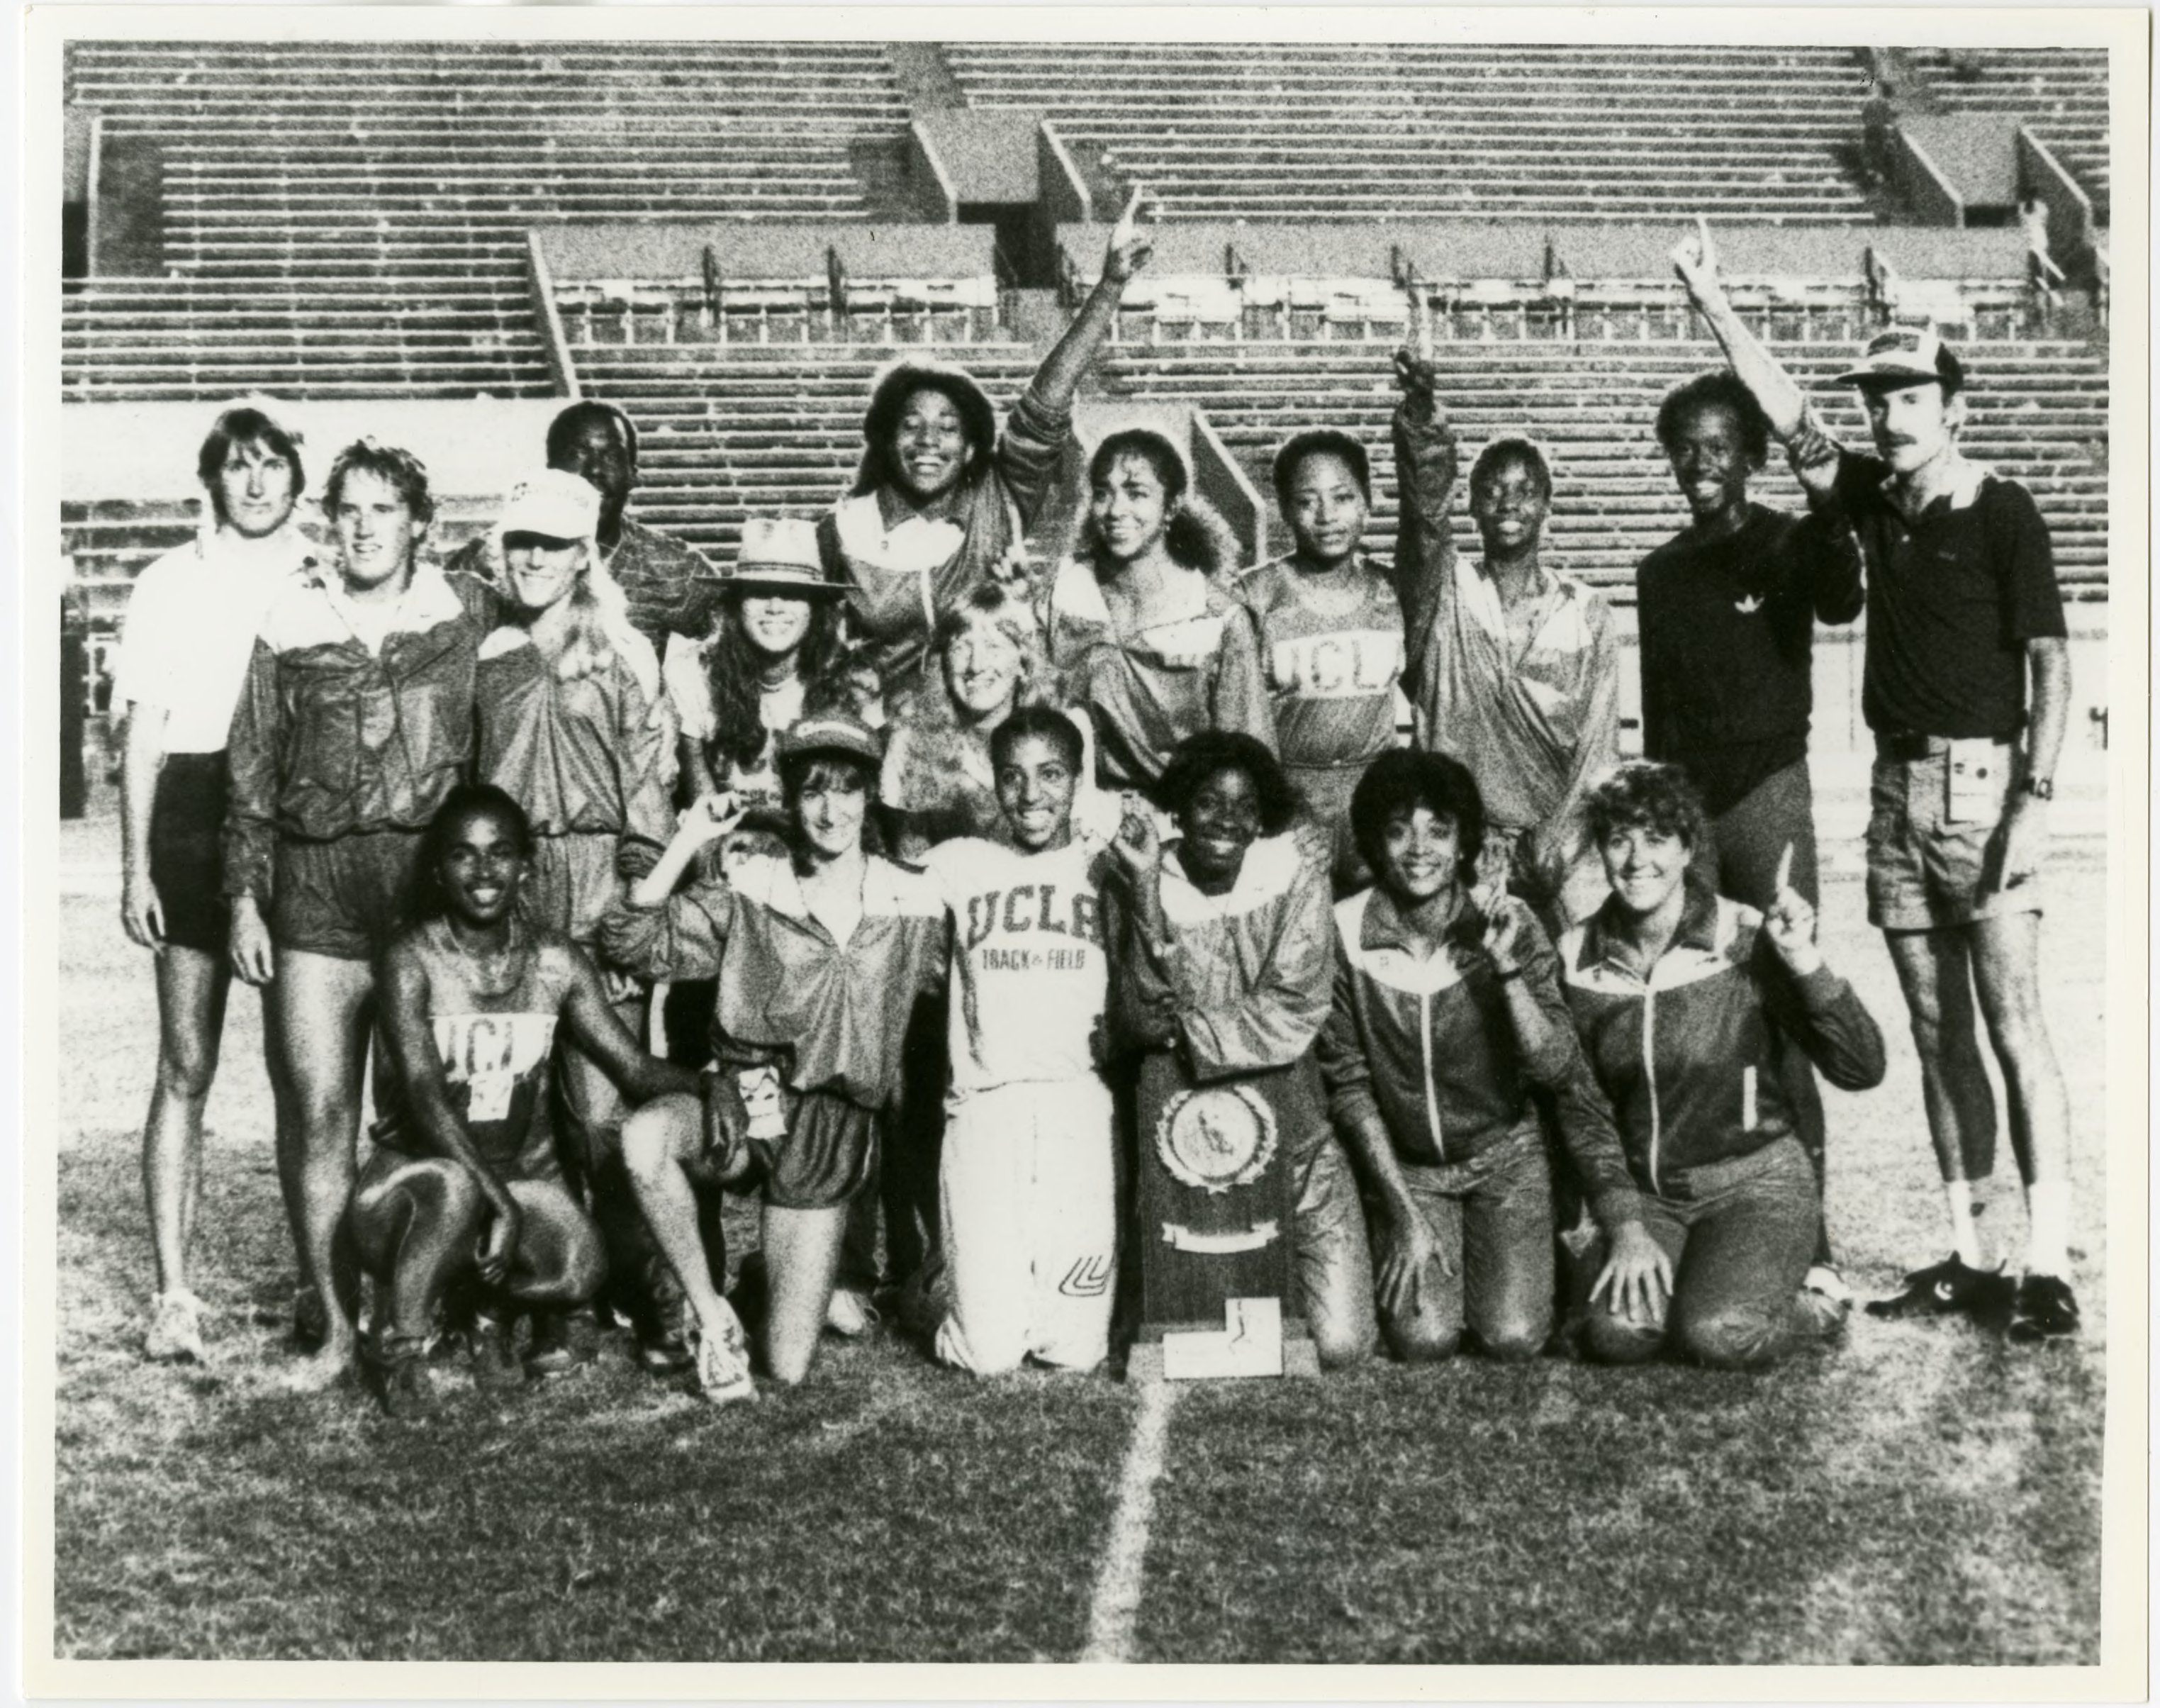 UCLA Library University archives captures Track and Field after NCAA championship in 1983, this team includes Senior Florence Griffith ( second from right first row) who by this time established her own personal best collegiate record in 400 meter dash.